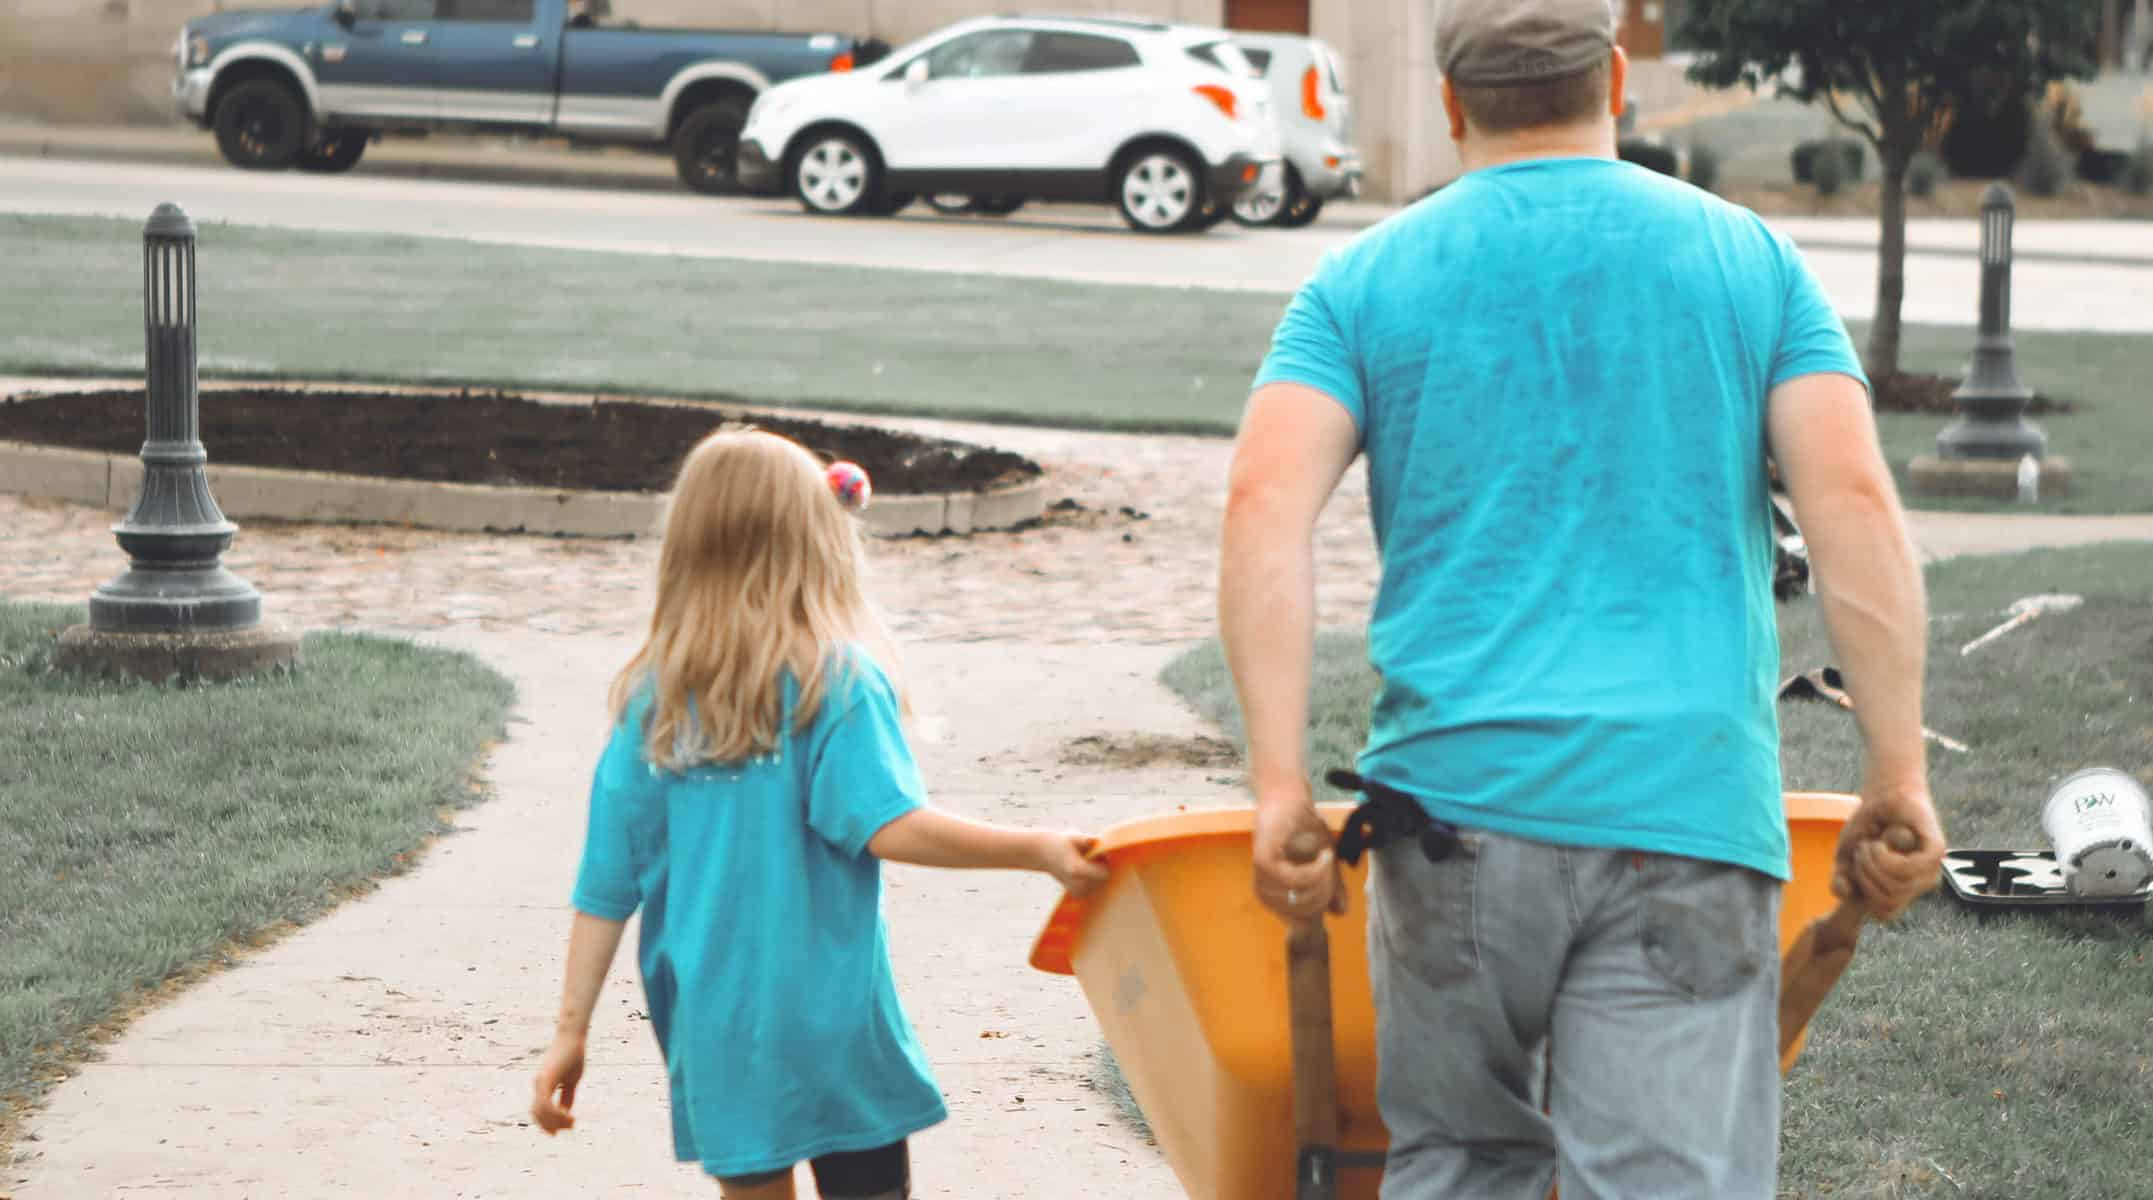 A father and daughter volunteer by moving a wheelbarrow.